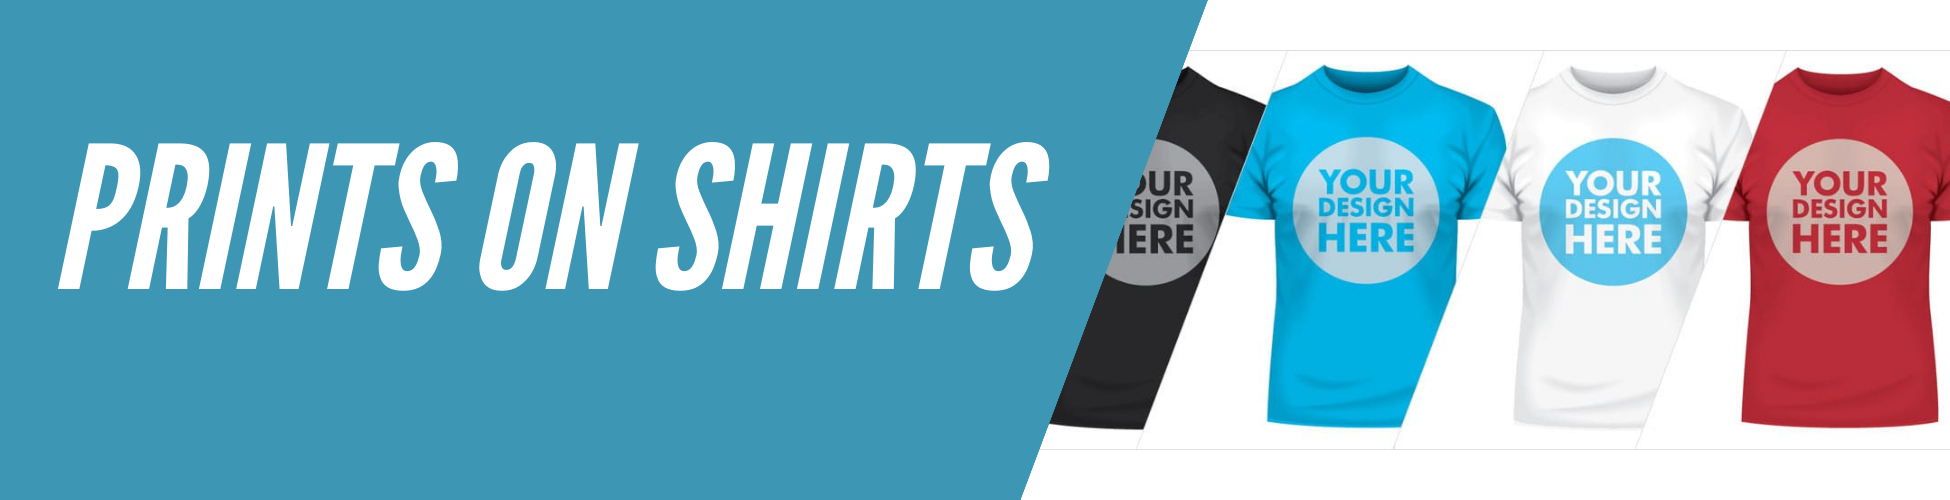 prints-on-shirts-banner-v2.png